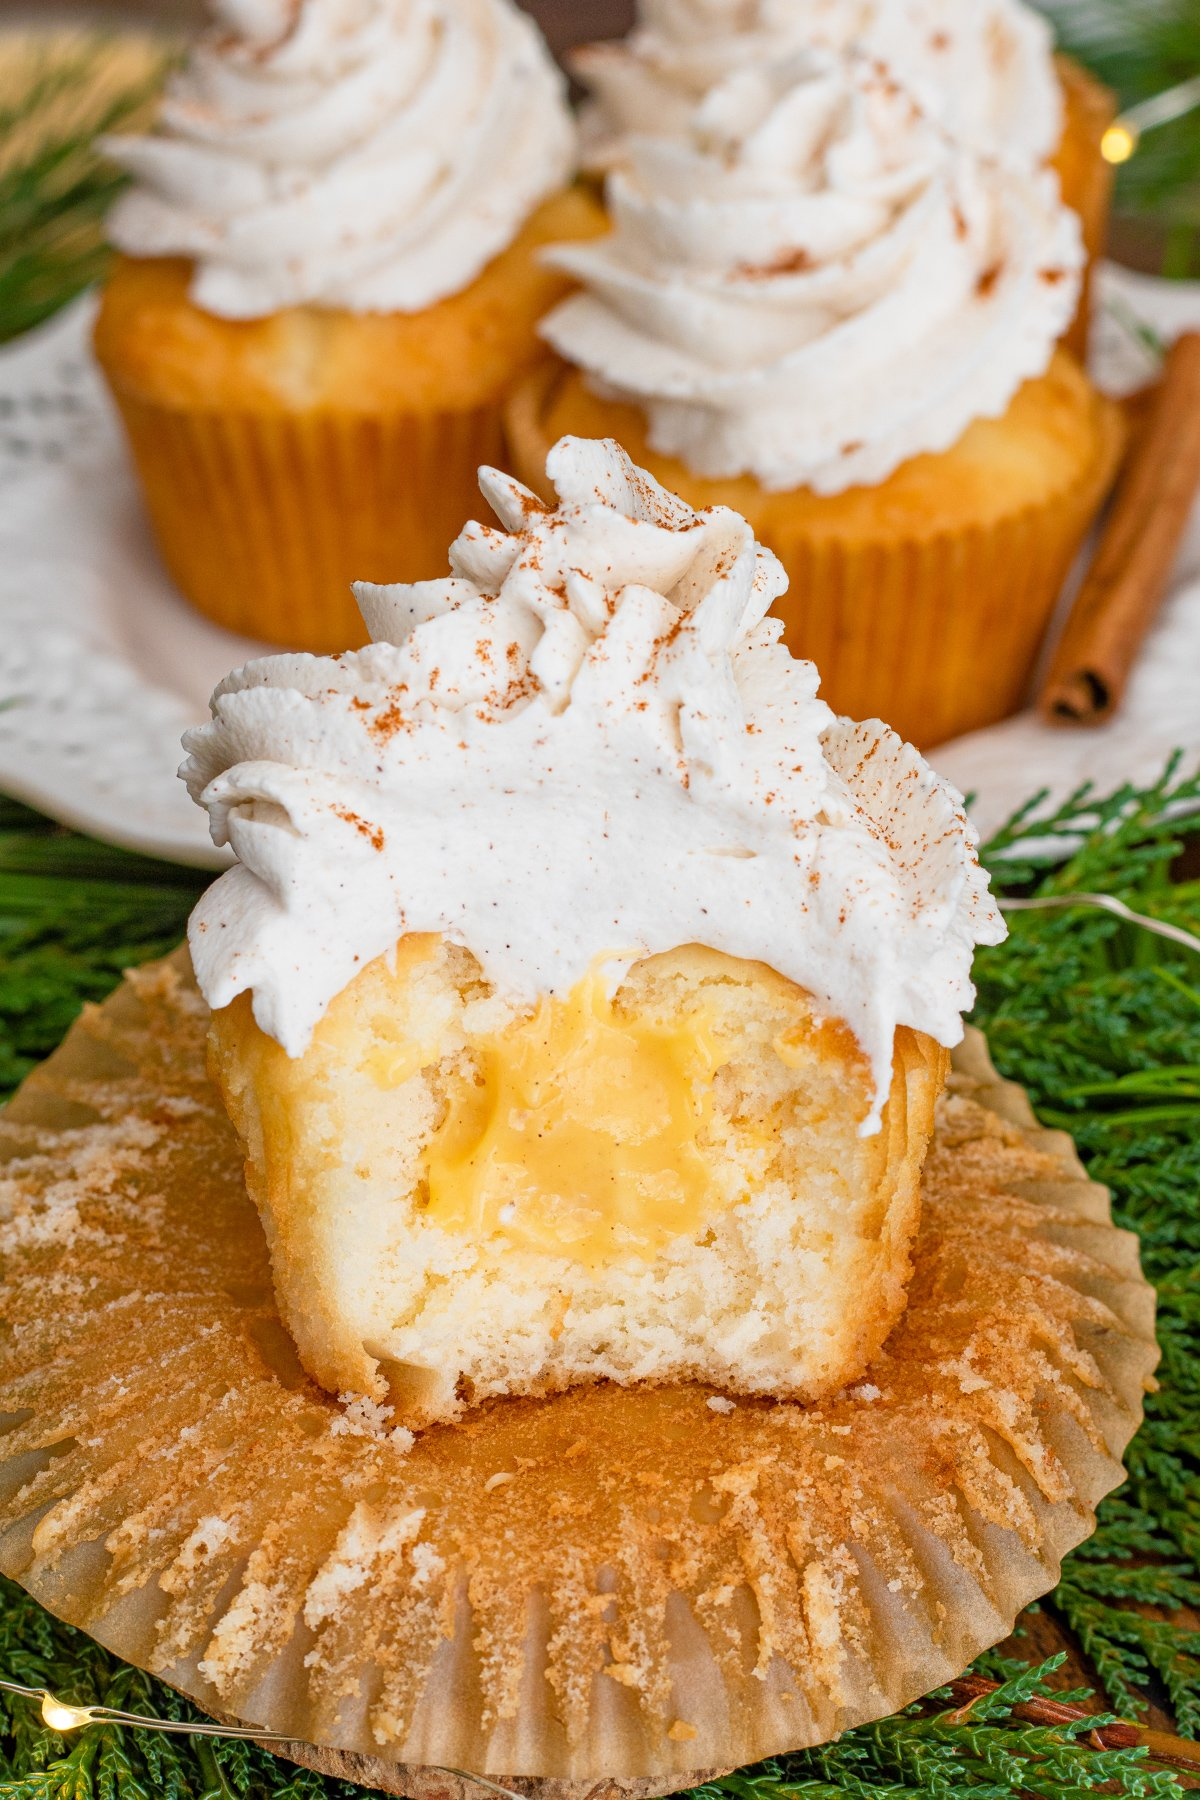 Eggnog Cupcake cut in half showing the filling